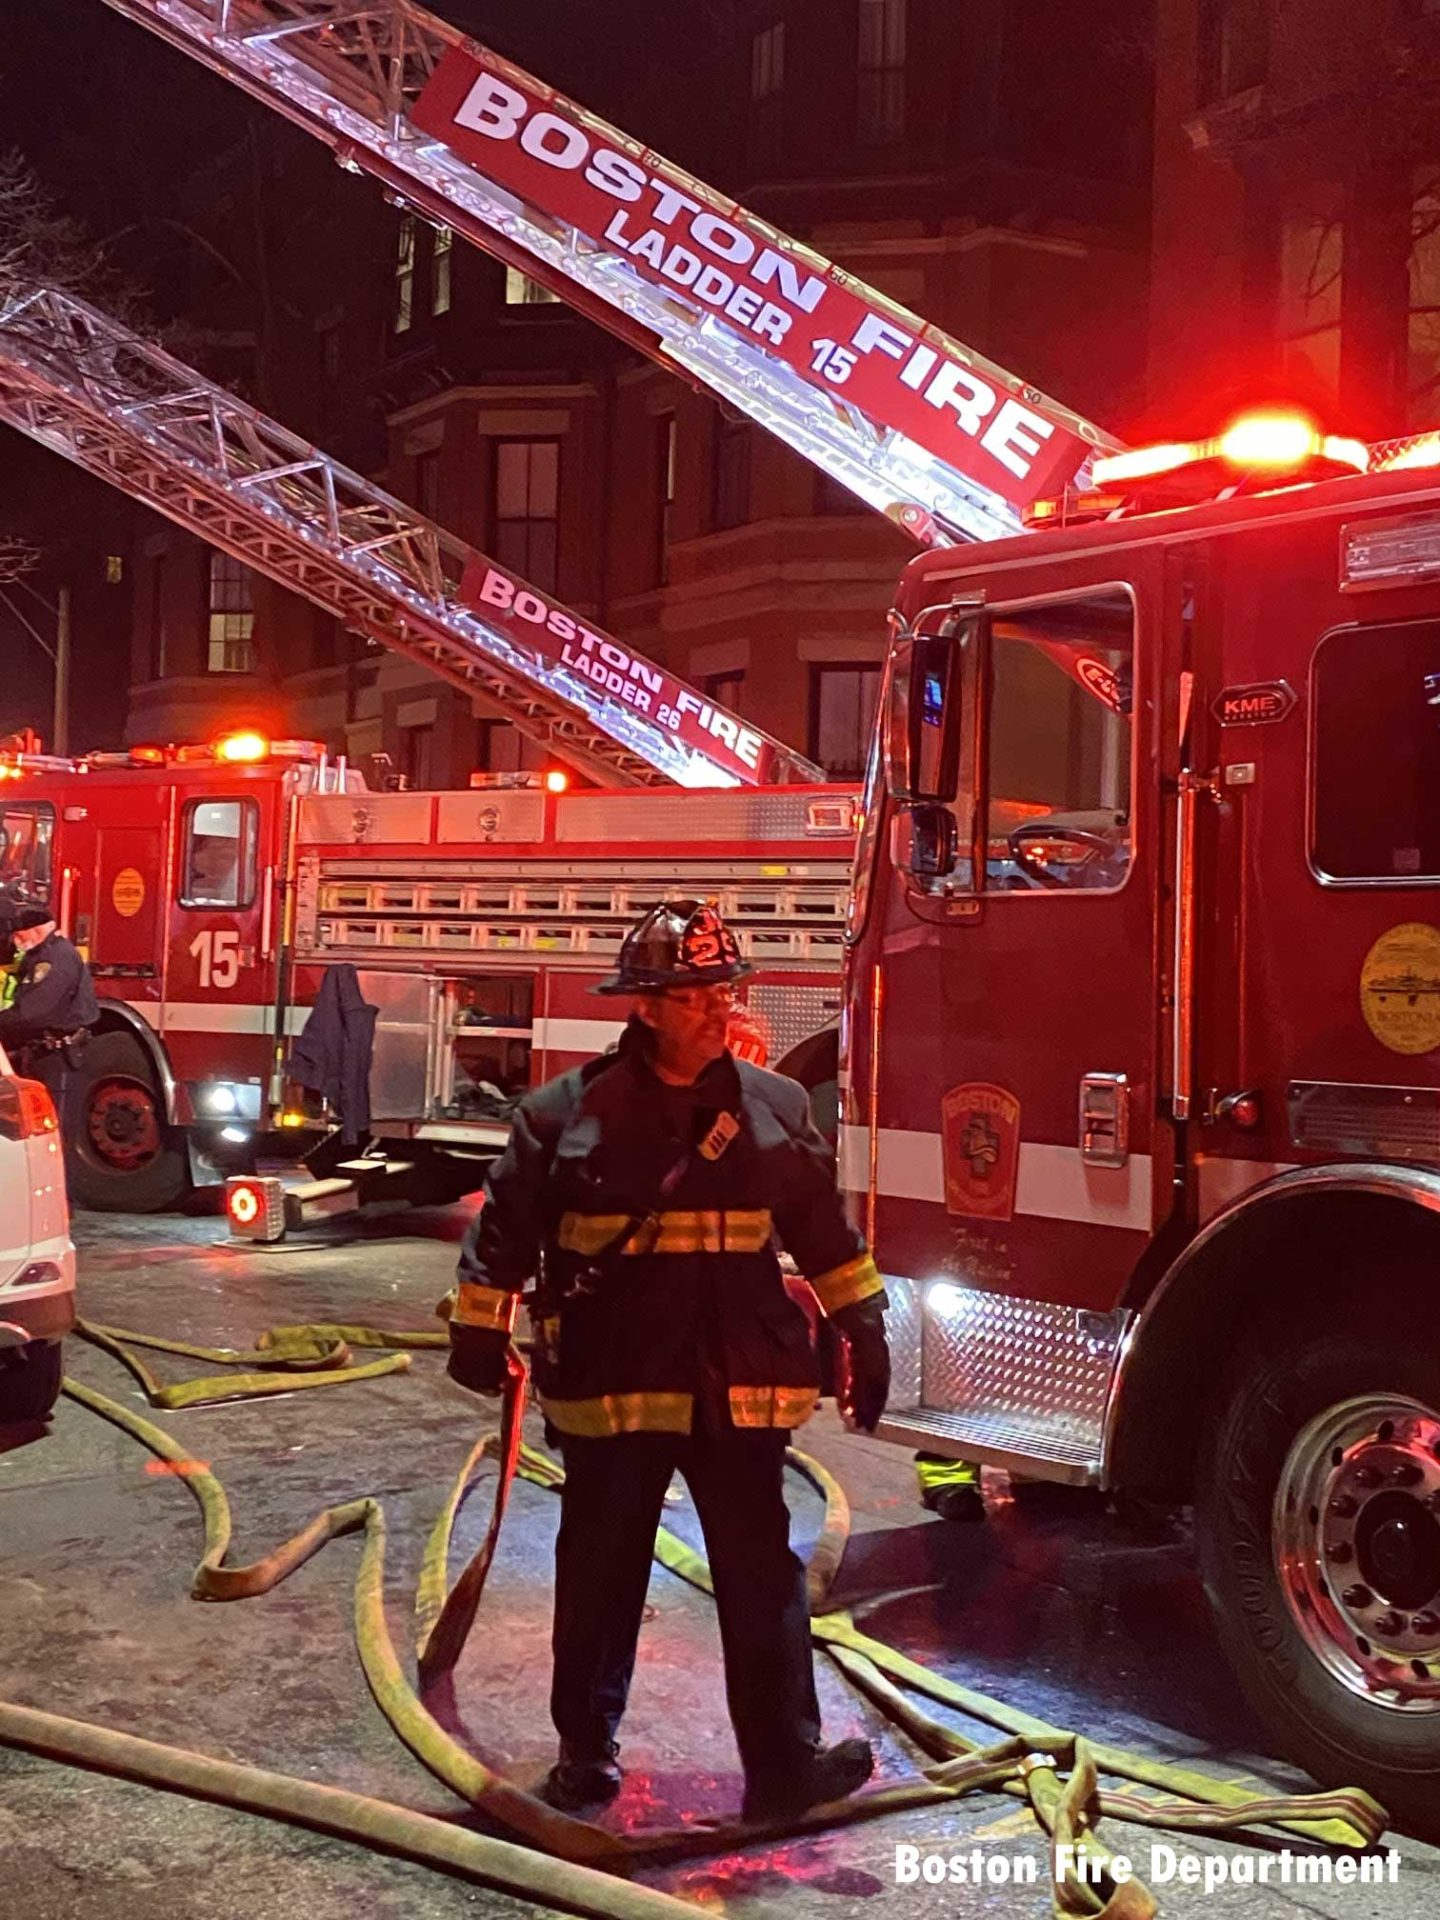 Boston firefighter with hoseline and two aerials raised